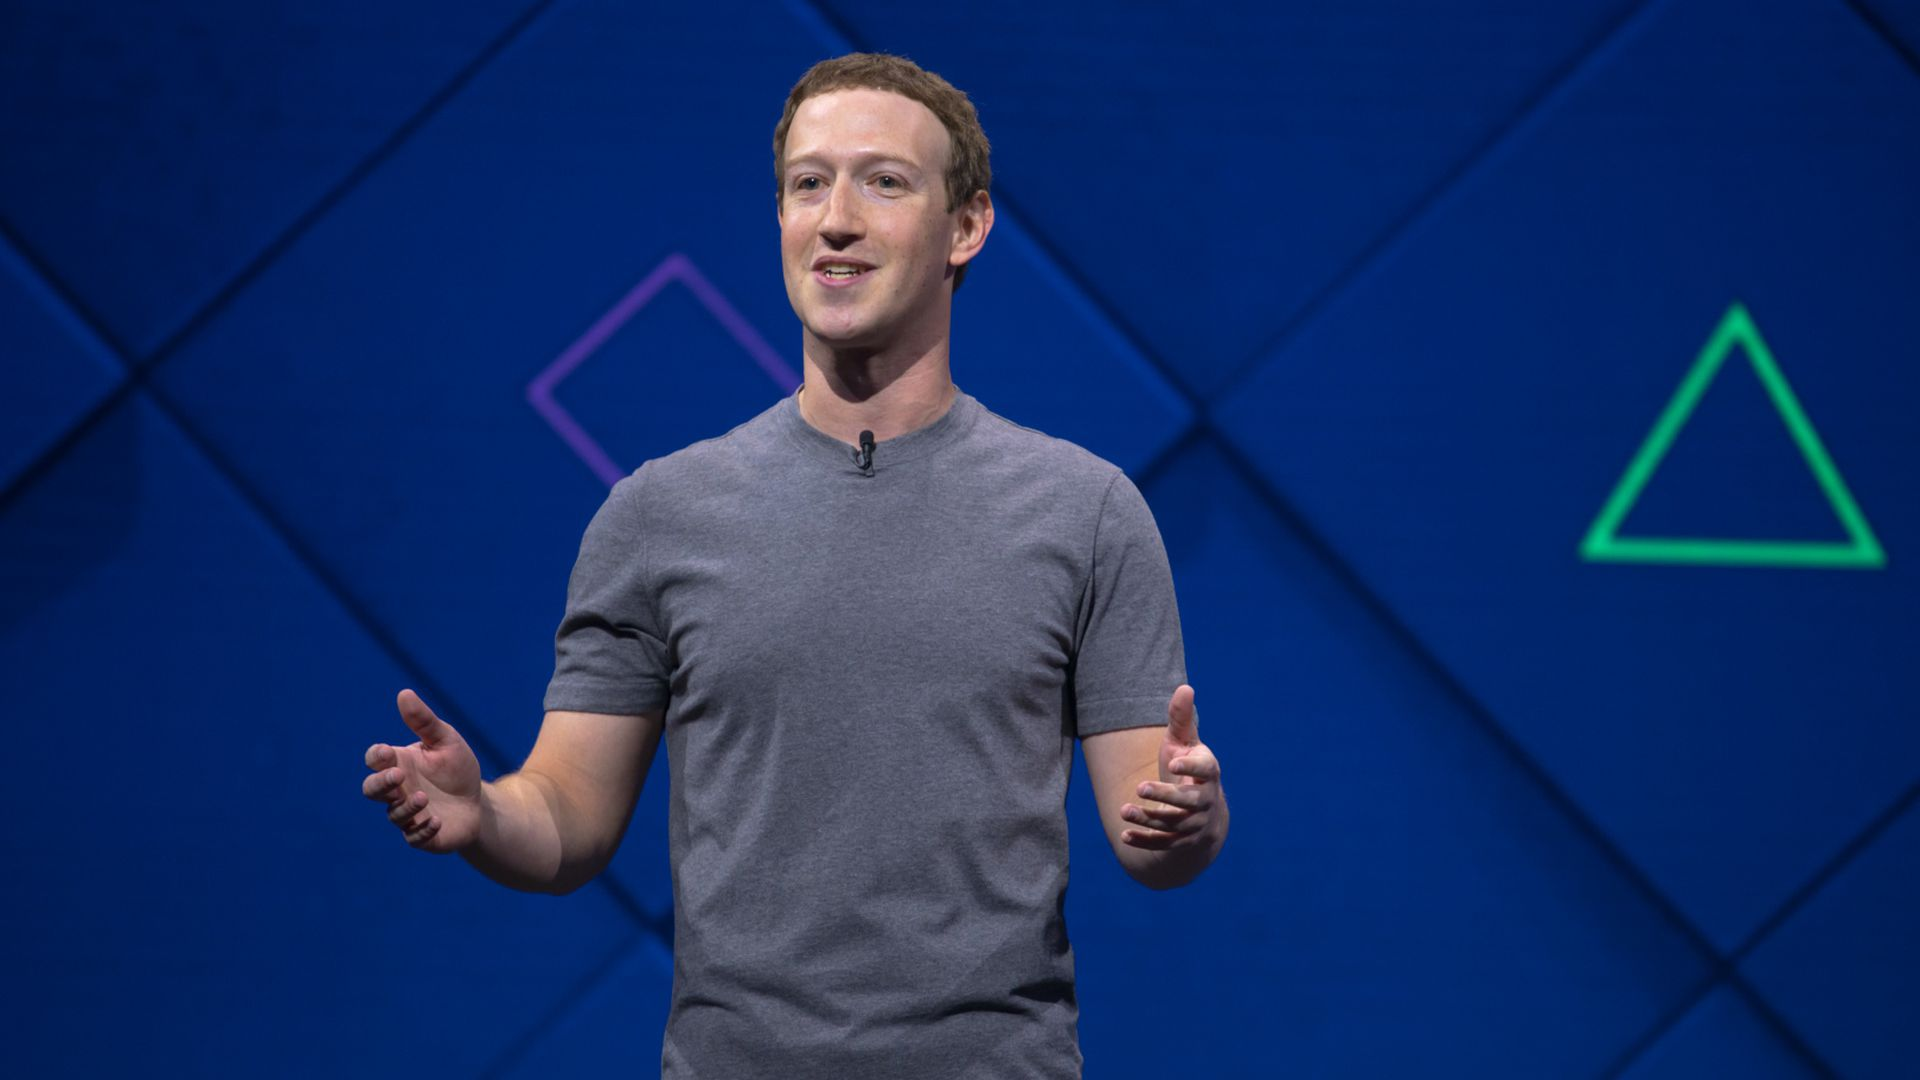 Facebook CEO Mark Zuckerberg, speaking at the F8 conference in 2017.